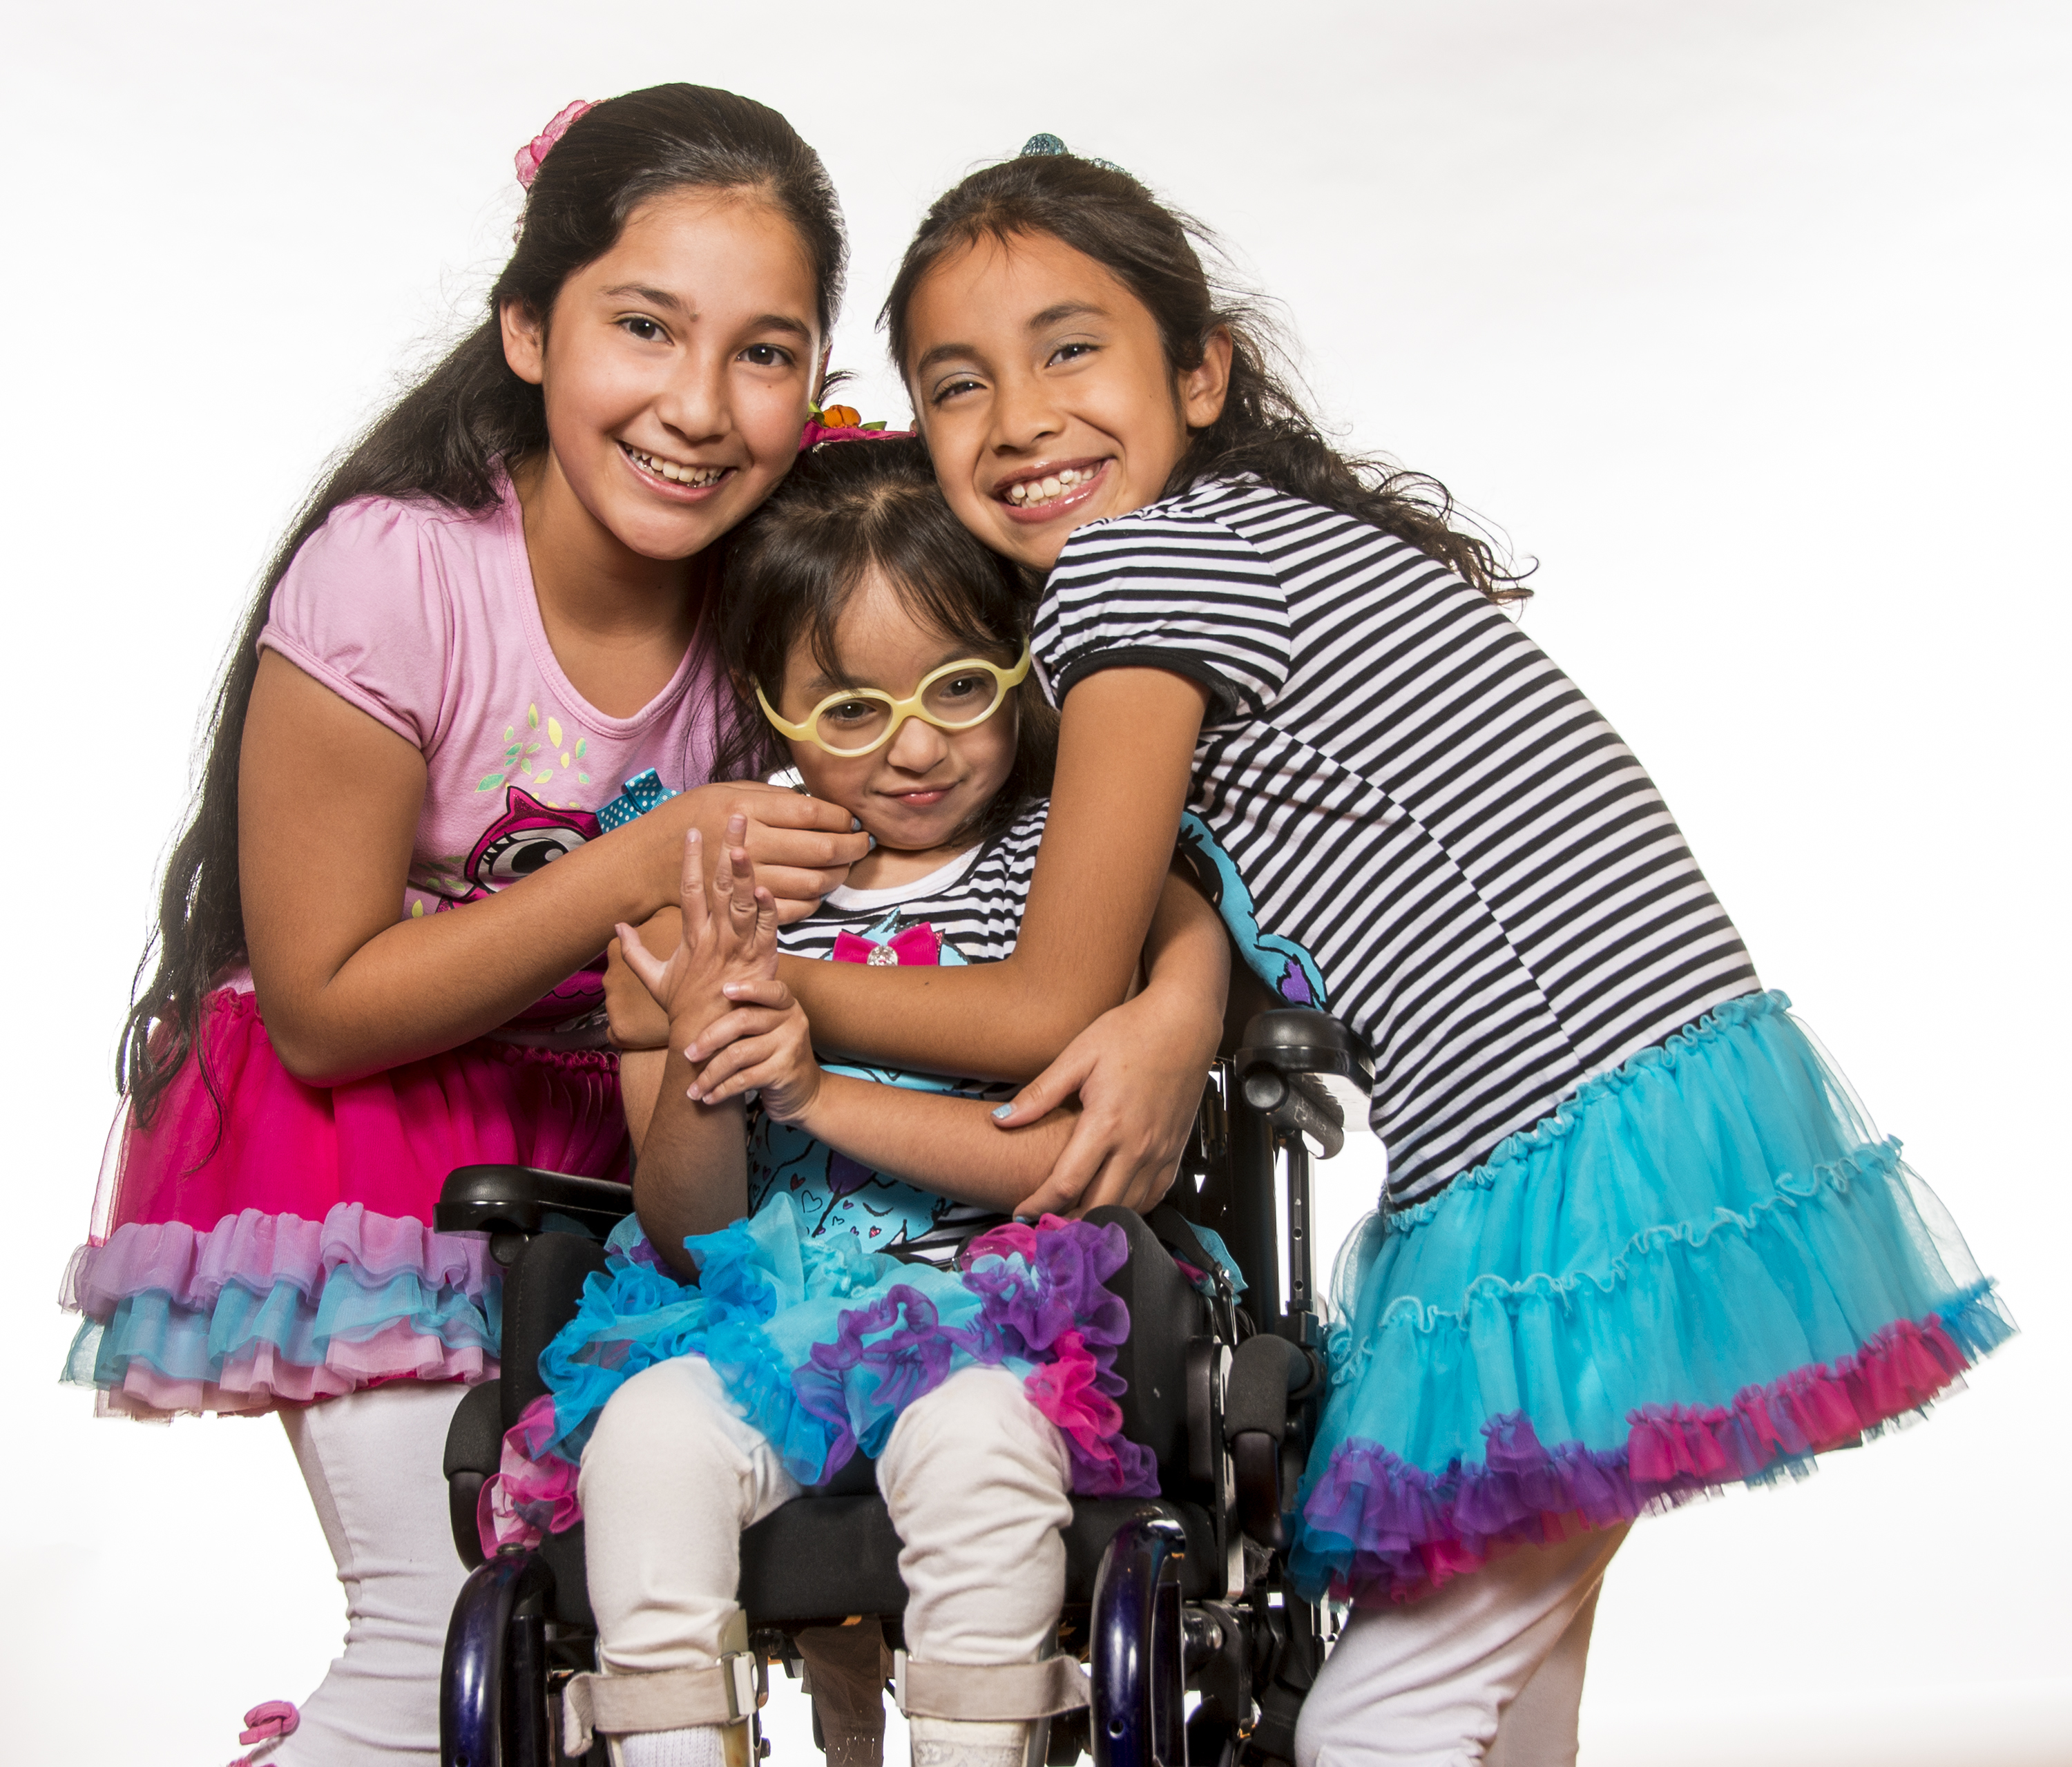 Families Of Children With Disabilities And Special Health Care Needs